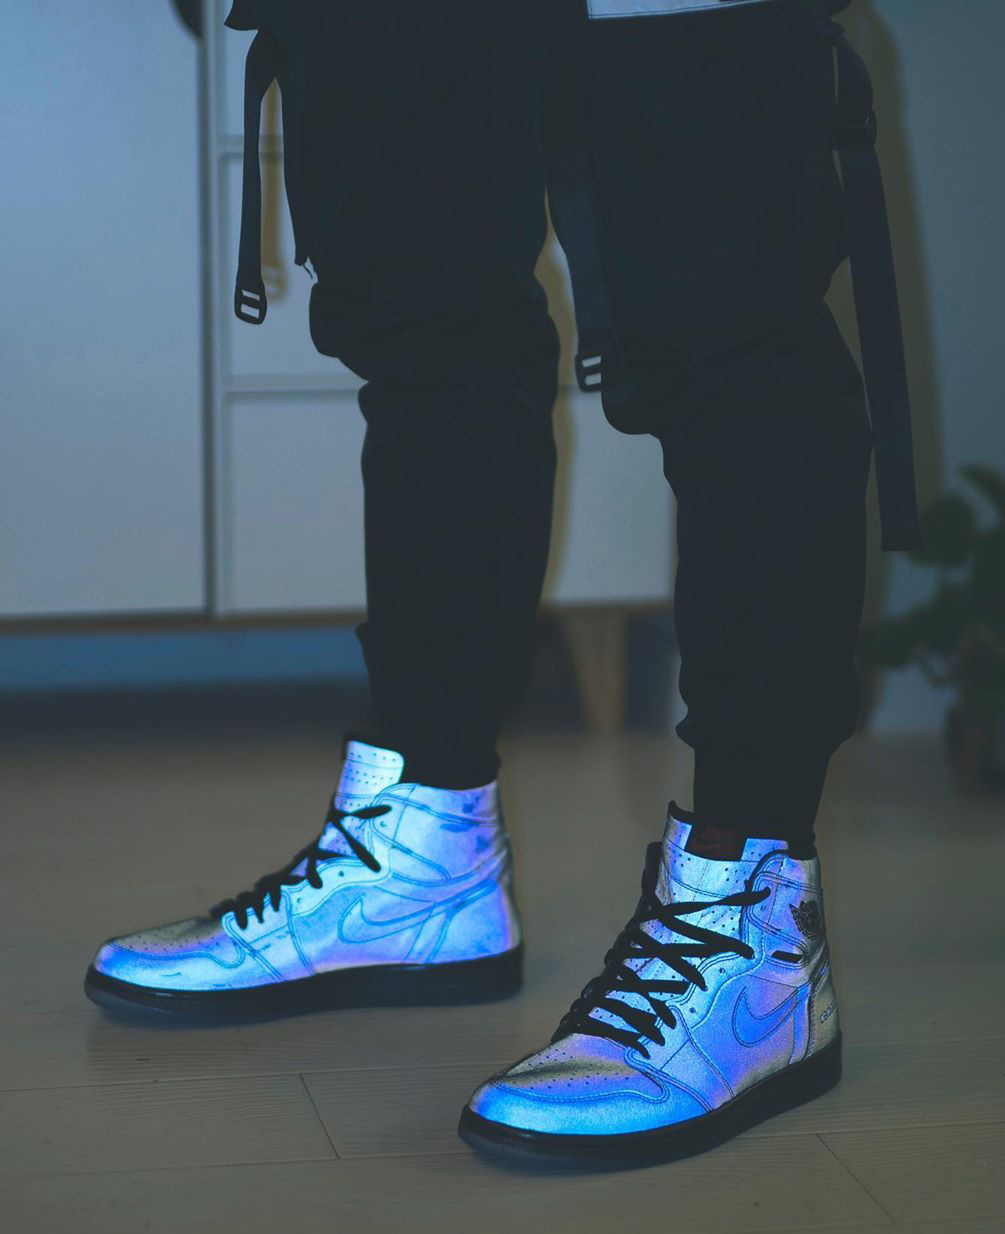 On-Foot Looks at the 3M Reflective Zoom Air Jordan 1 High